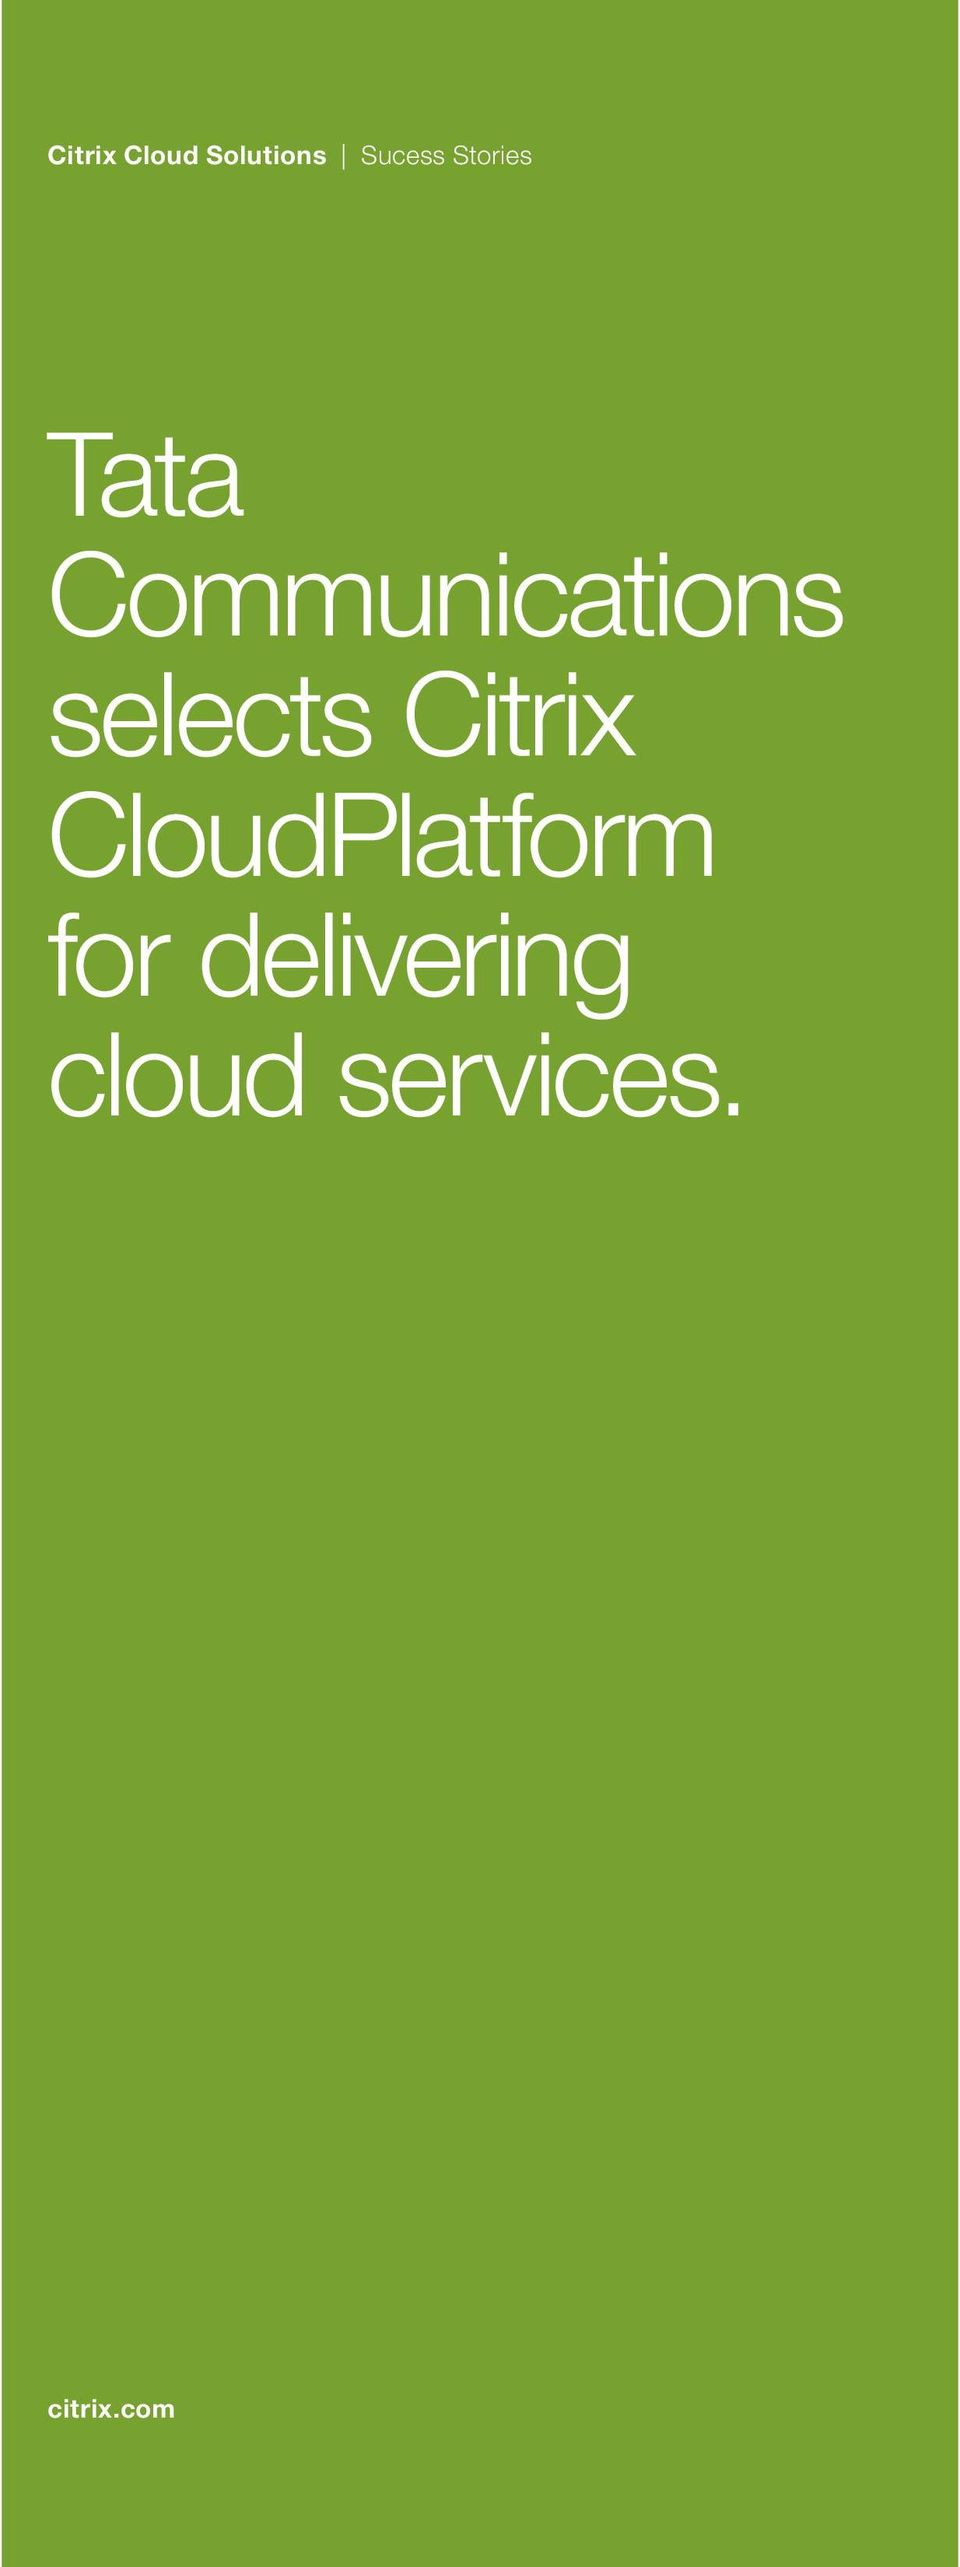 CloudPlatform for